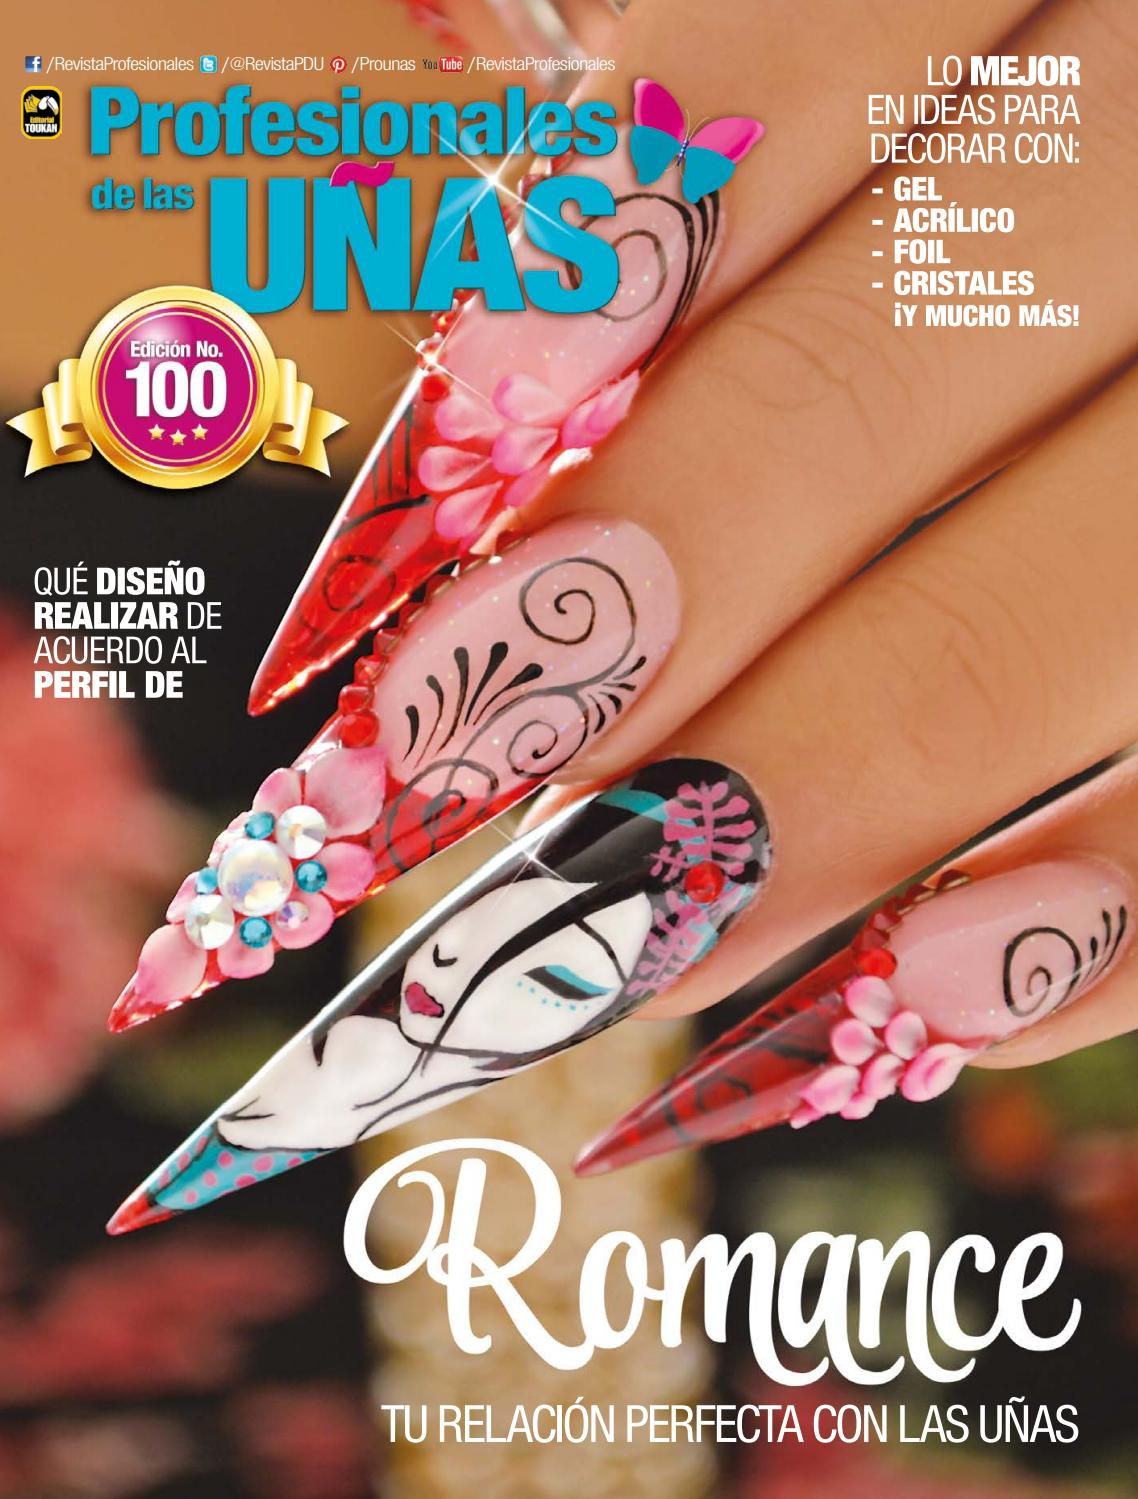 Profesionales de las uñas No. 100 by Editorial Toukan - issuu